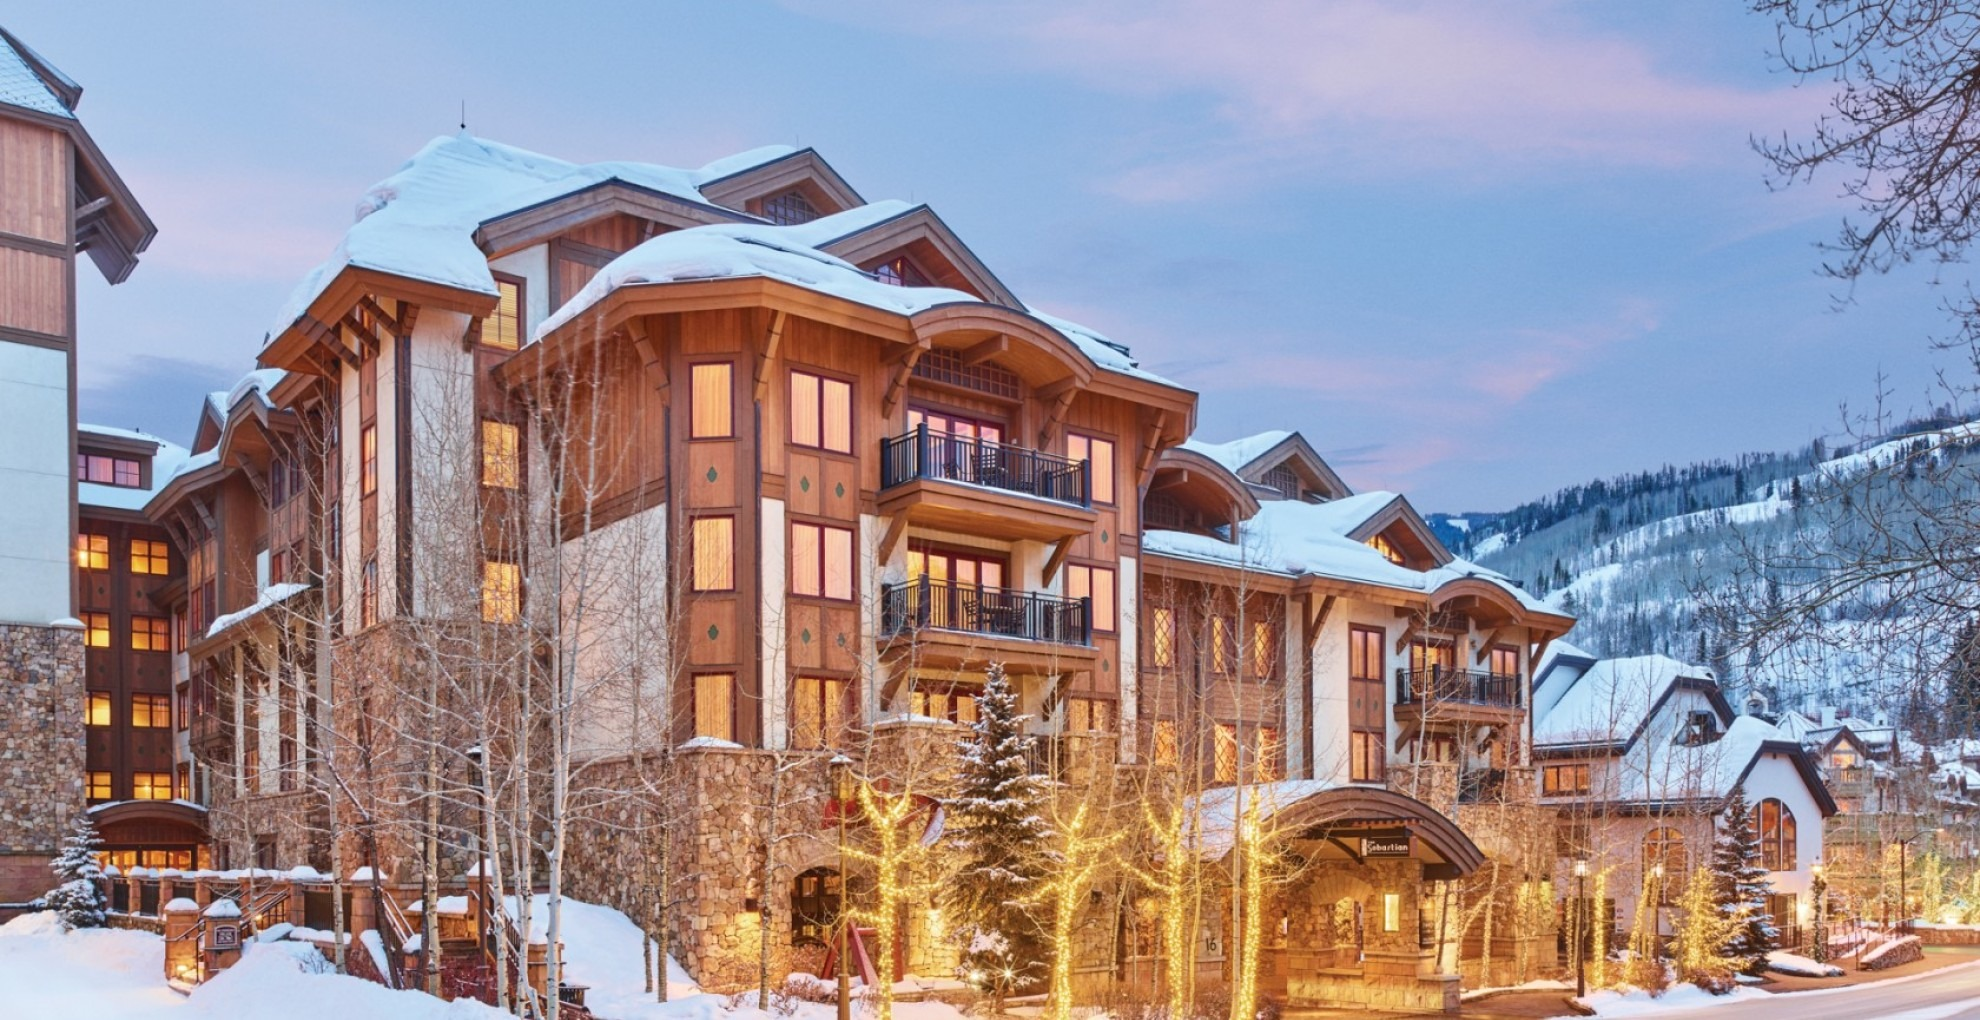 In The Heart of Vail Village